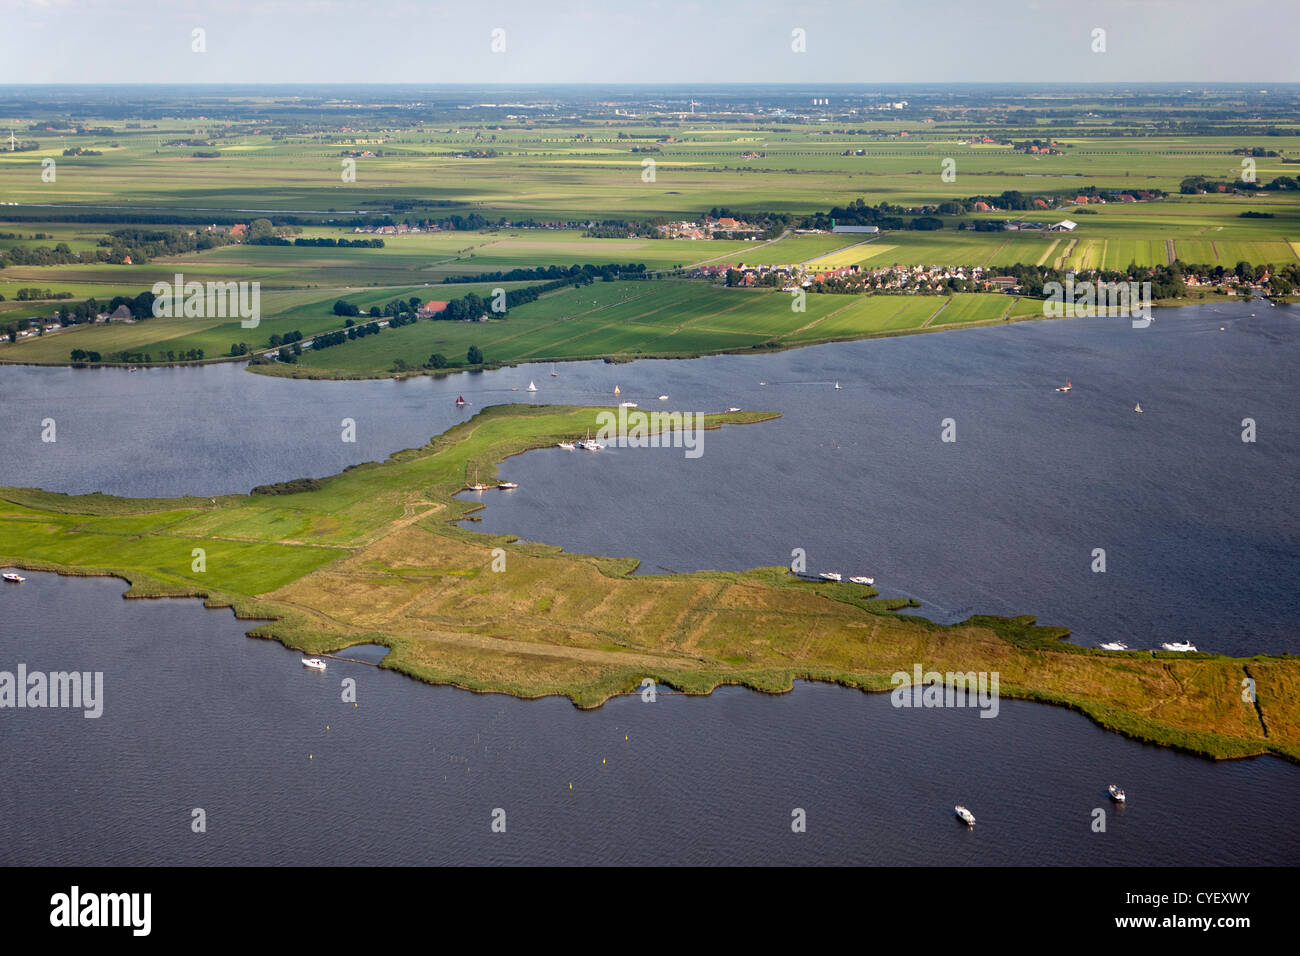 The Netherlands, Terherne,  Aerial. - Stock Image